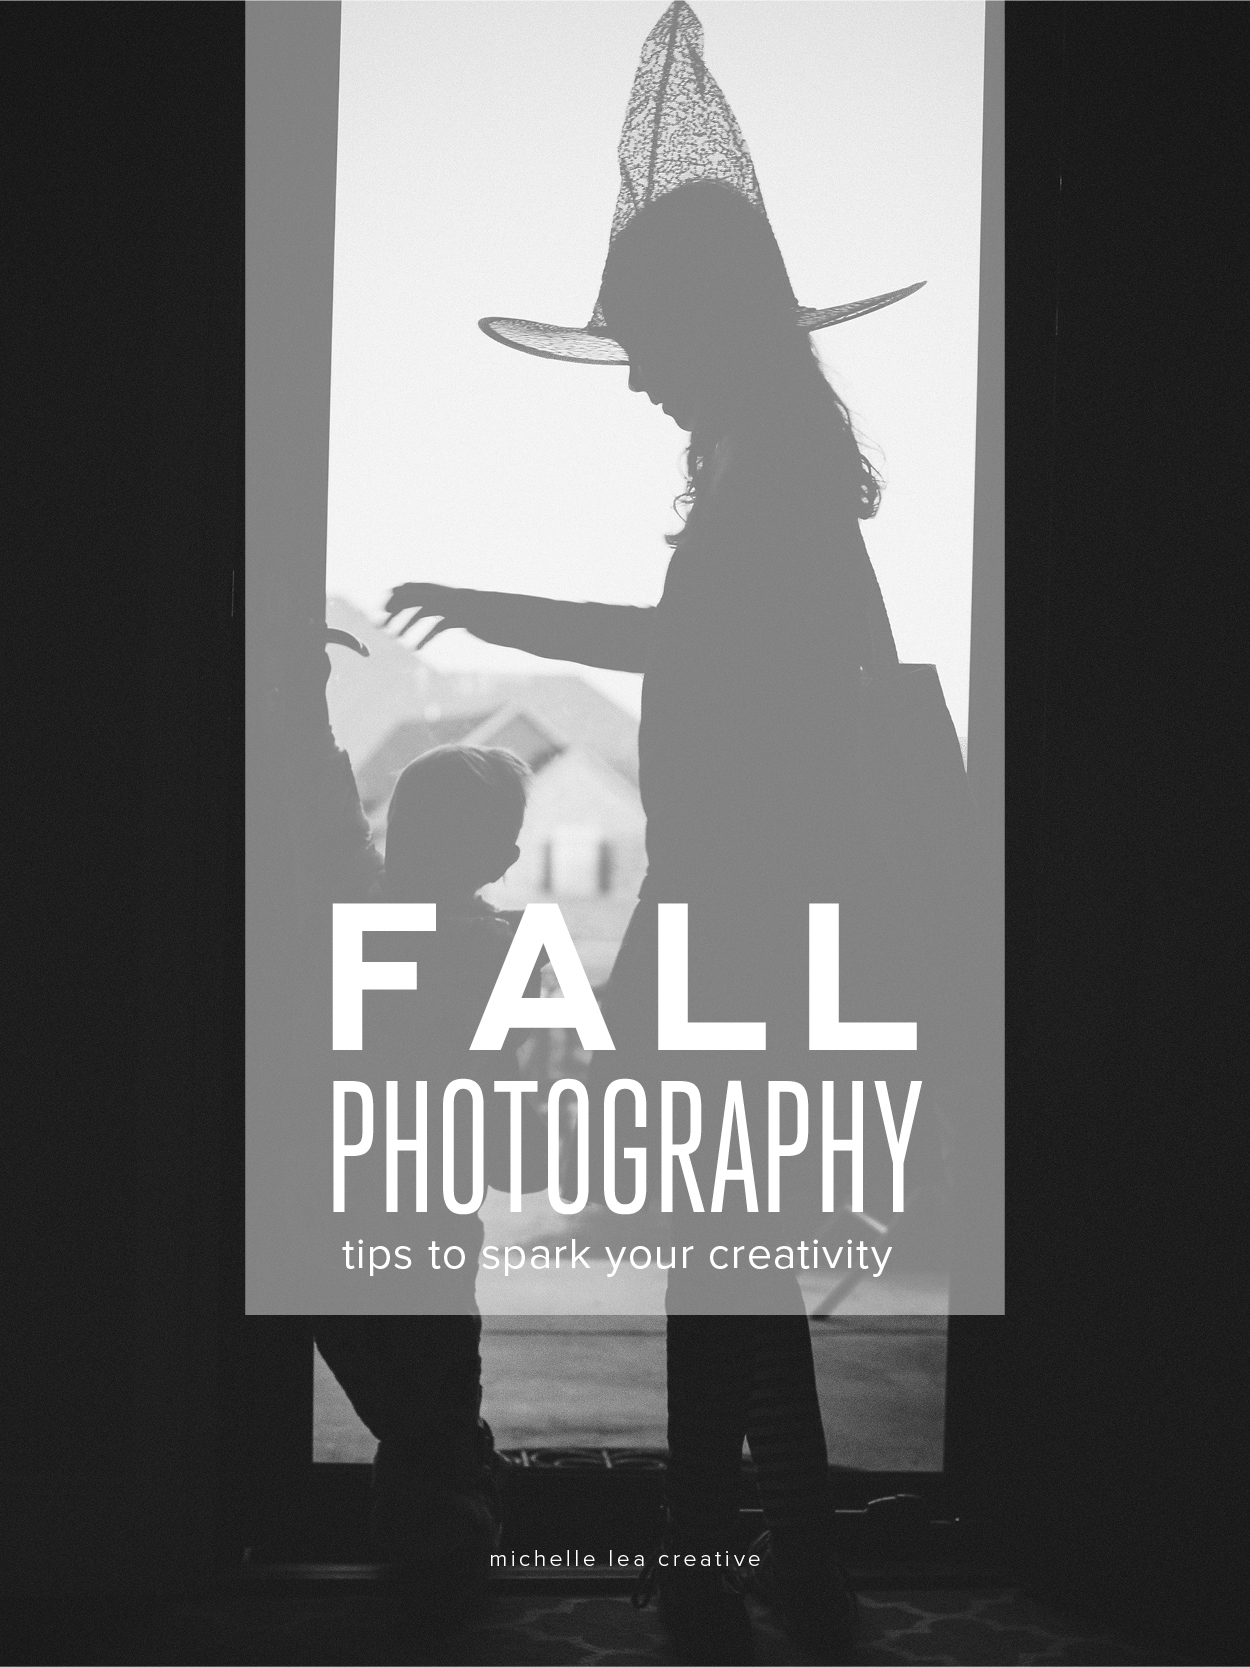 Fall Photography Tips to Spark Your Creativity